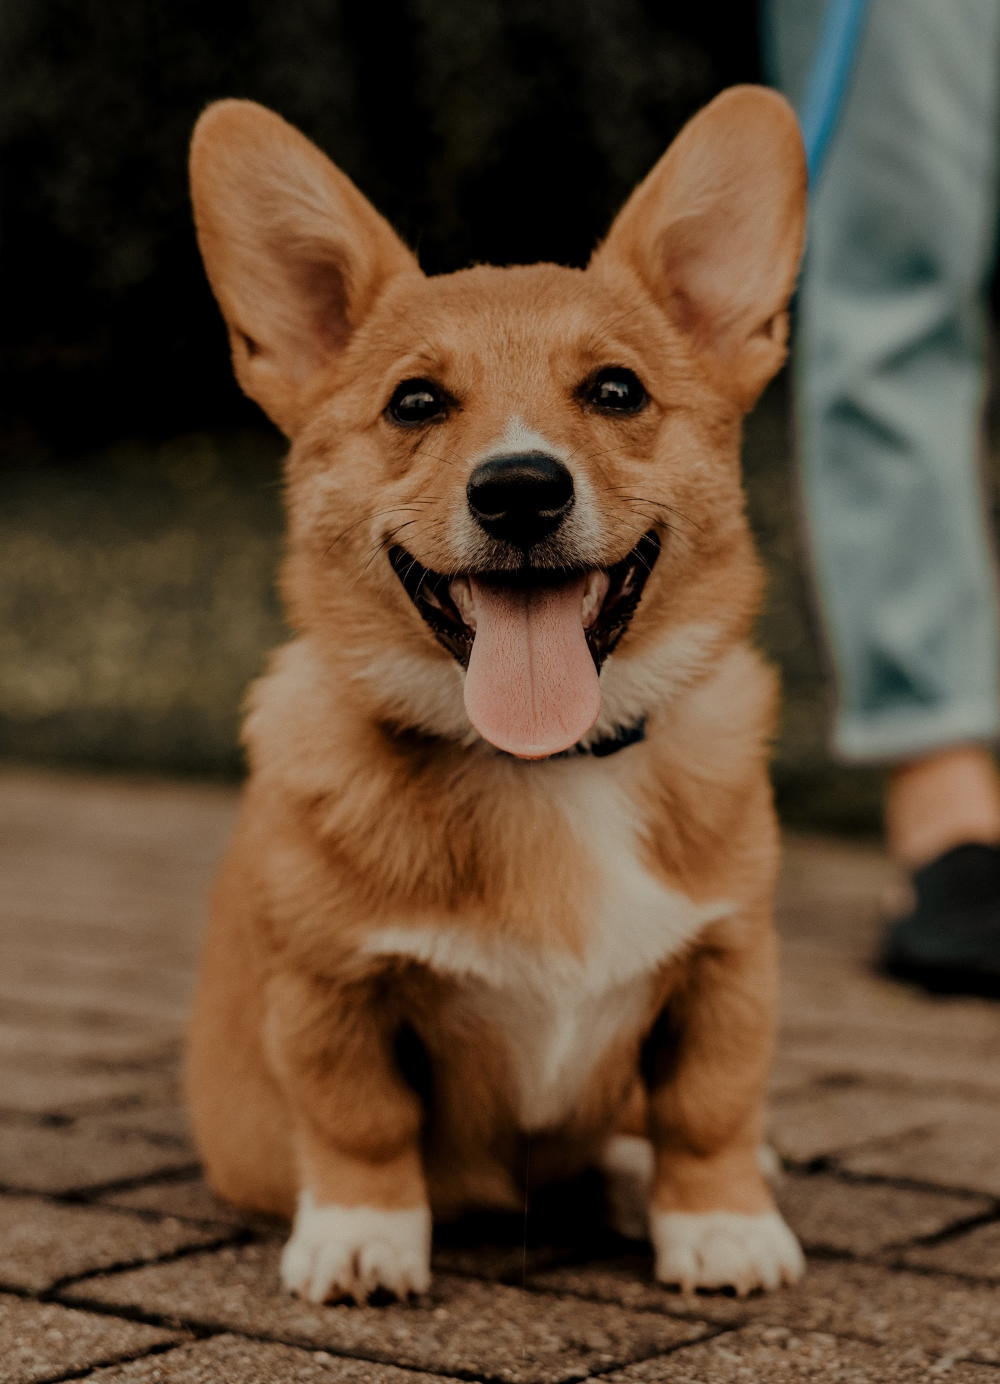 Corgi Wallpaper 4k Pets Collection Laginate Corgi Wallpaper Cute Dog Wallpaper Corgi Dog